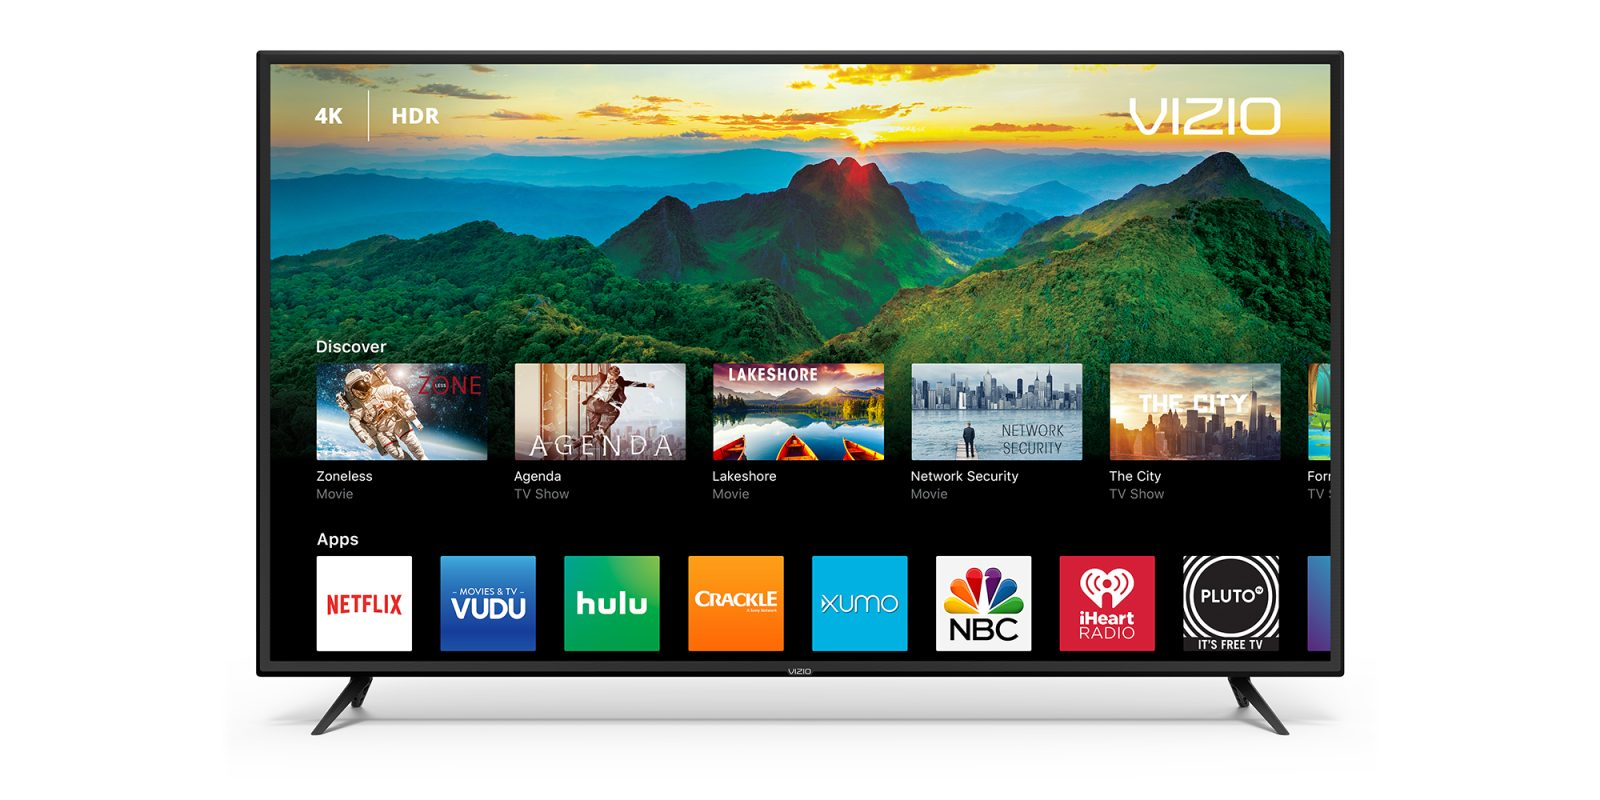 Chromecast support, 4K, HDR and more highlight this VIZIO 60-inch UHDTV, now $399 (Reg. $500)